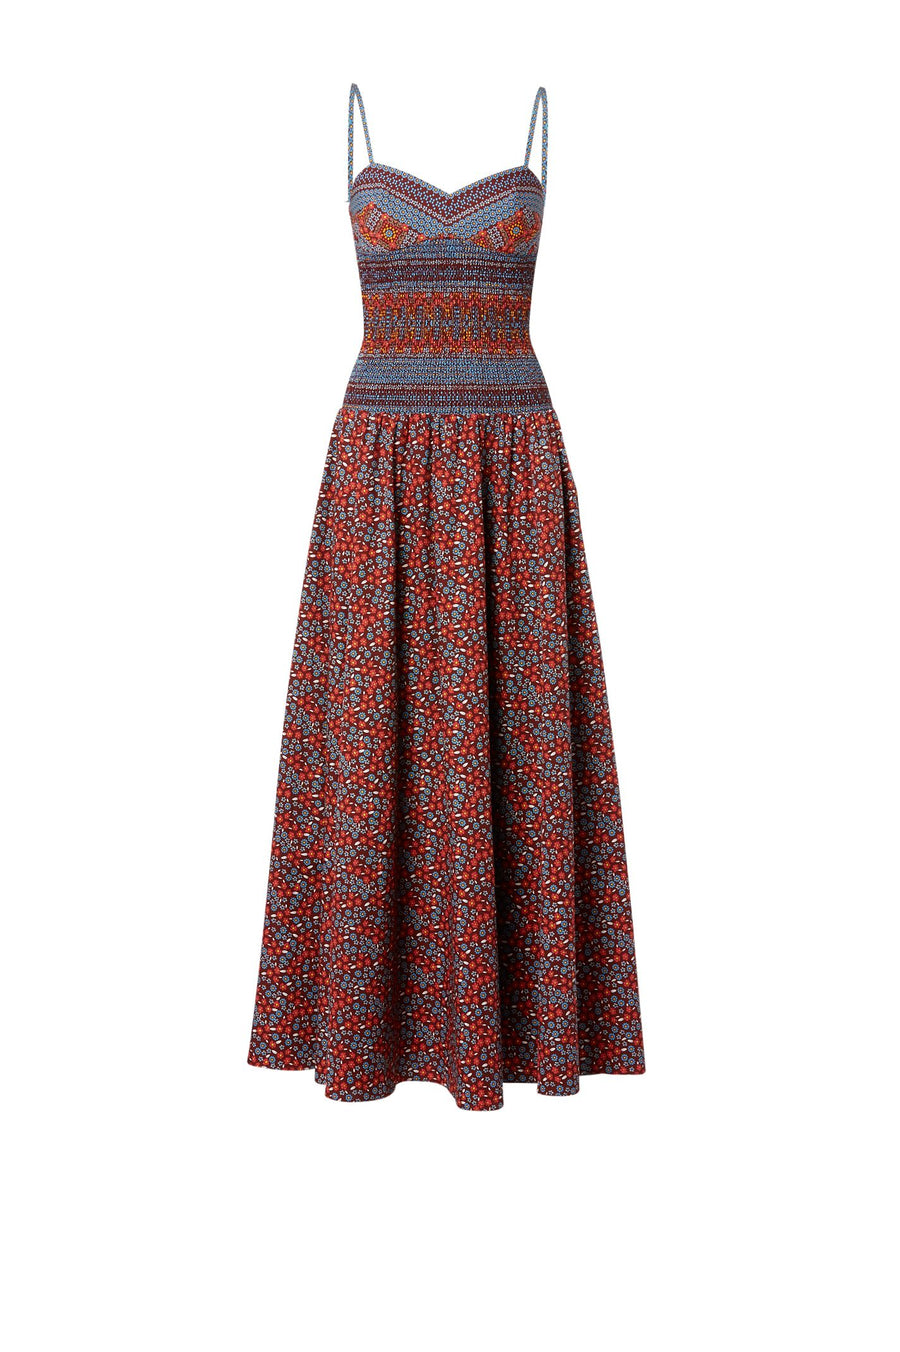 COTTON FLORAL DRESS, shoestring straps, tight around waist and flares with long skirt to ankle, color ruby